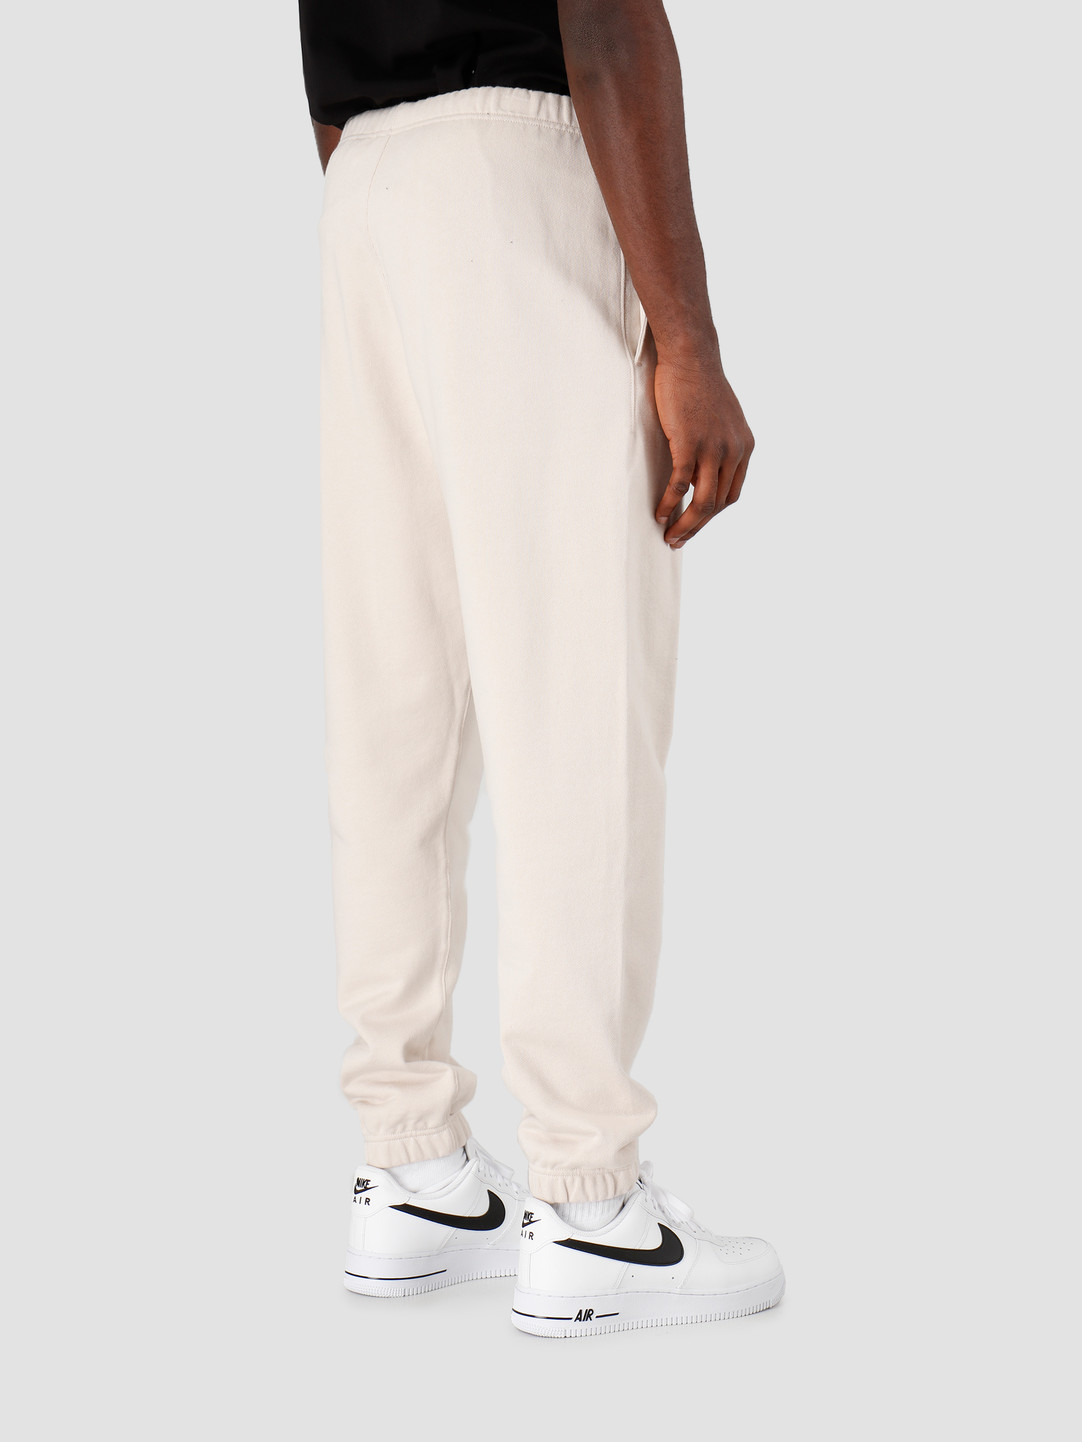 Daily Paper Daily Paper Esalias Sweatpants Moonbeam Beige 20E1PA02-02